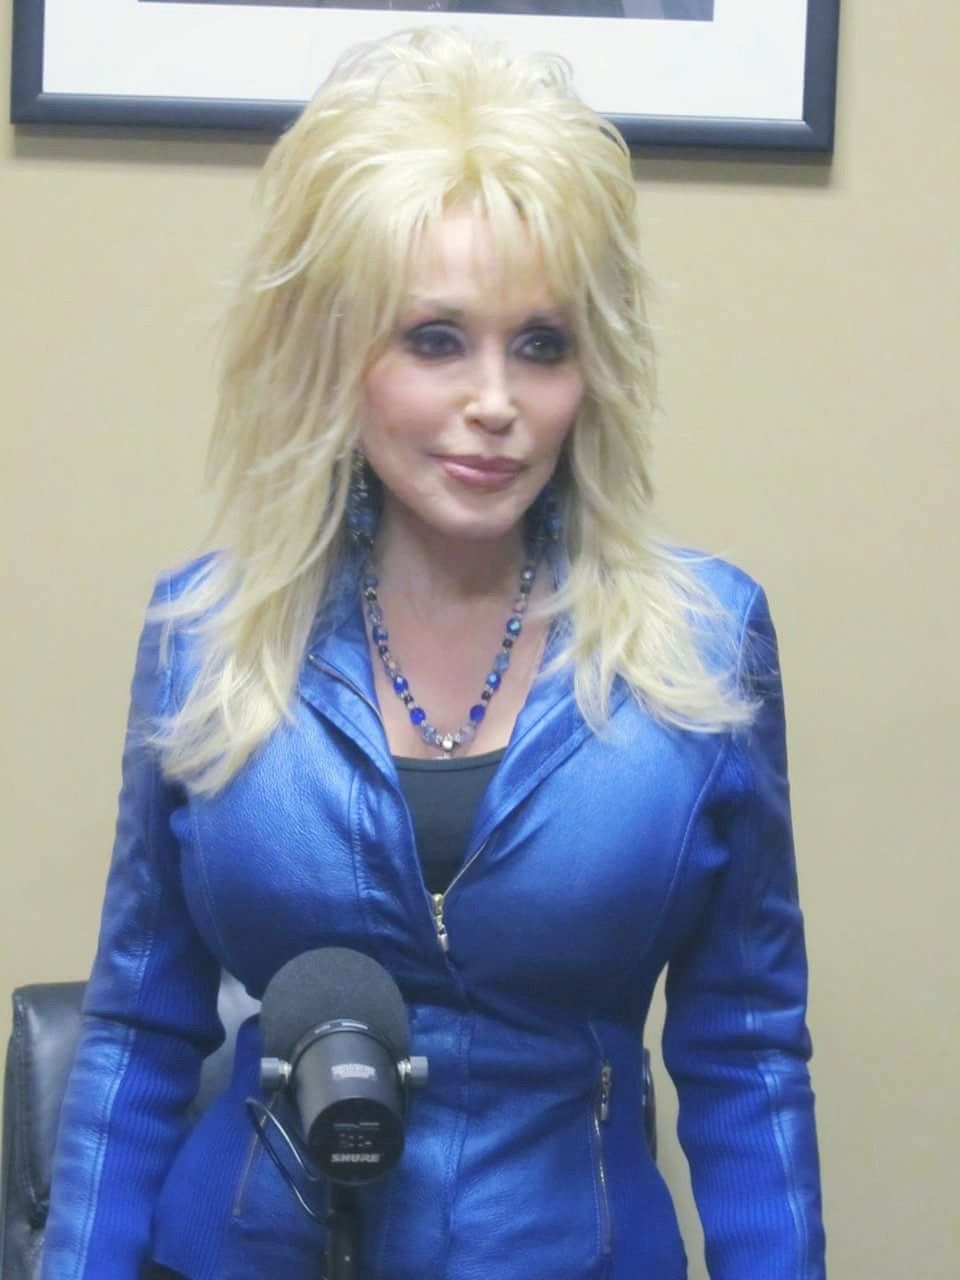 Dolly Parton Love Her Hair I Know Its A Wig I Still Love It Dolly Parton Wigs Grey Hair Reversal Her Hair